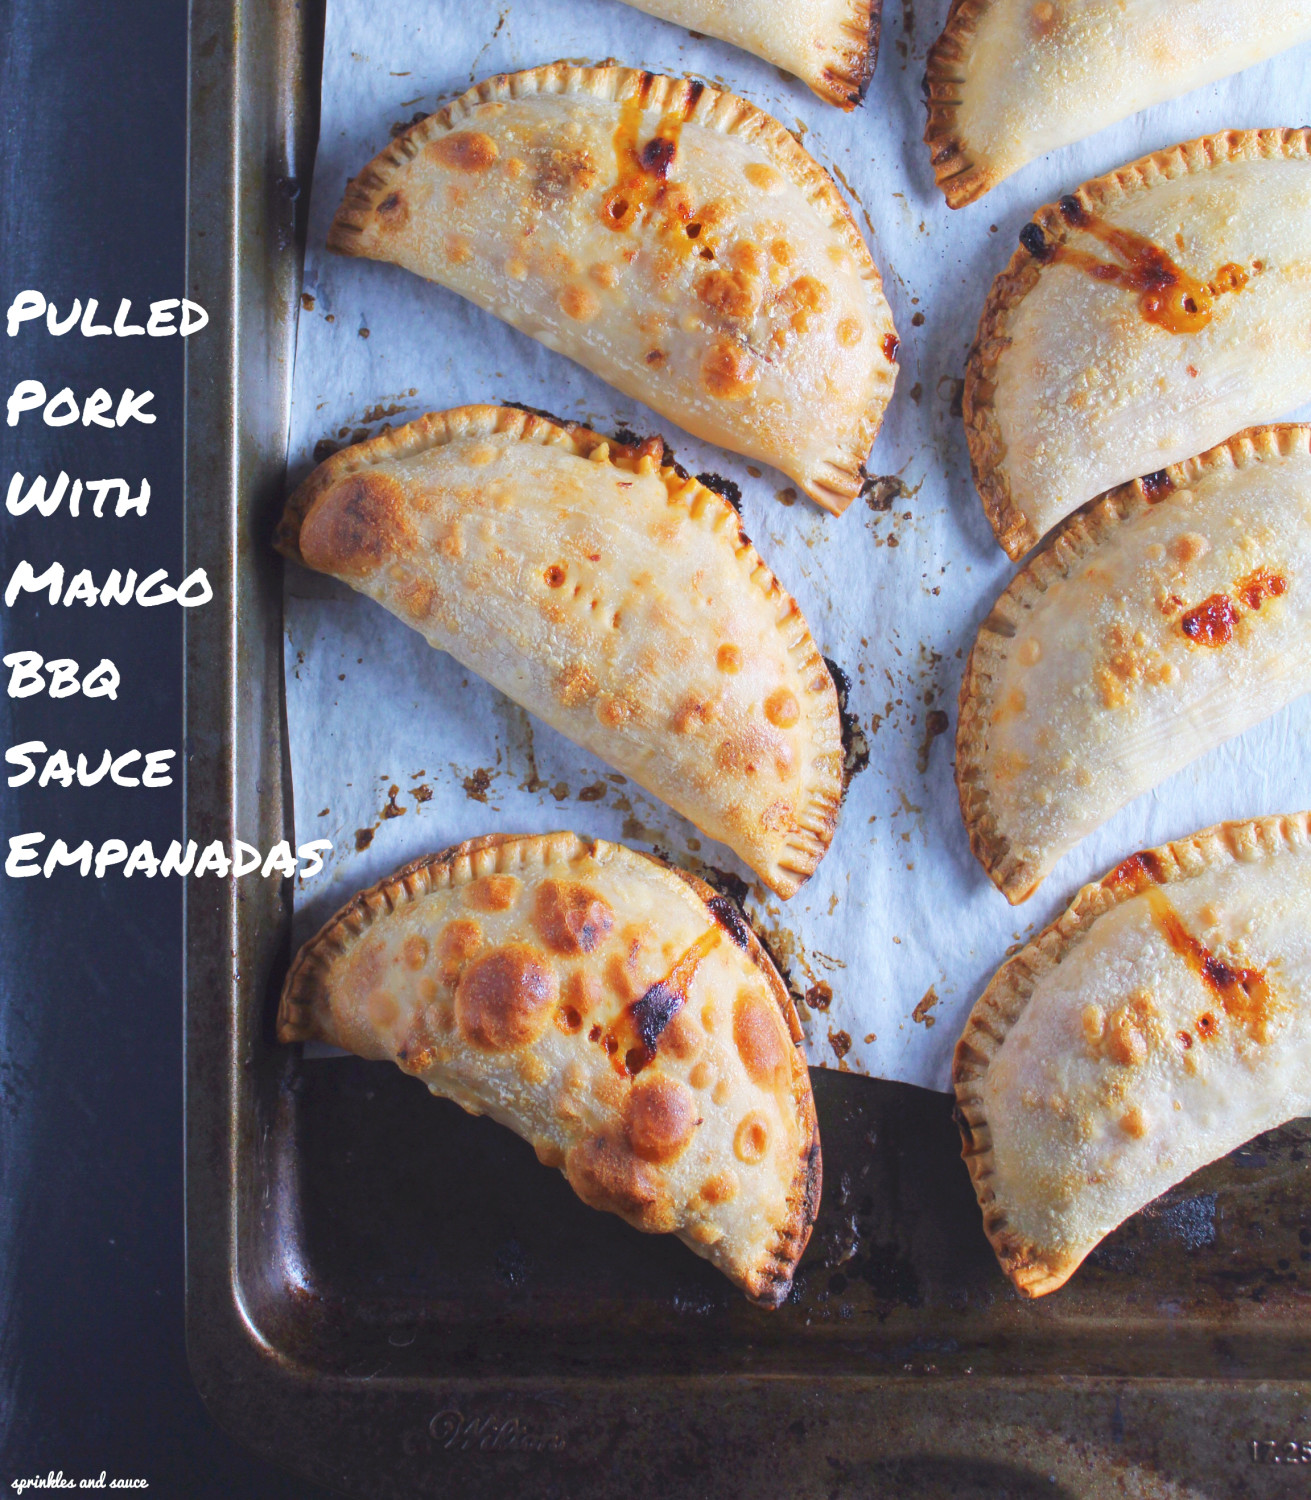 Pulled Pork with Mango Barbeque Sauce Empanadas - sprinkles and sauce